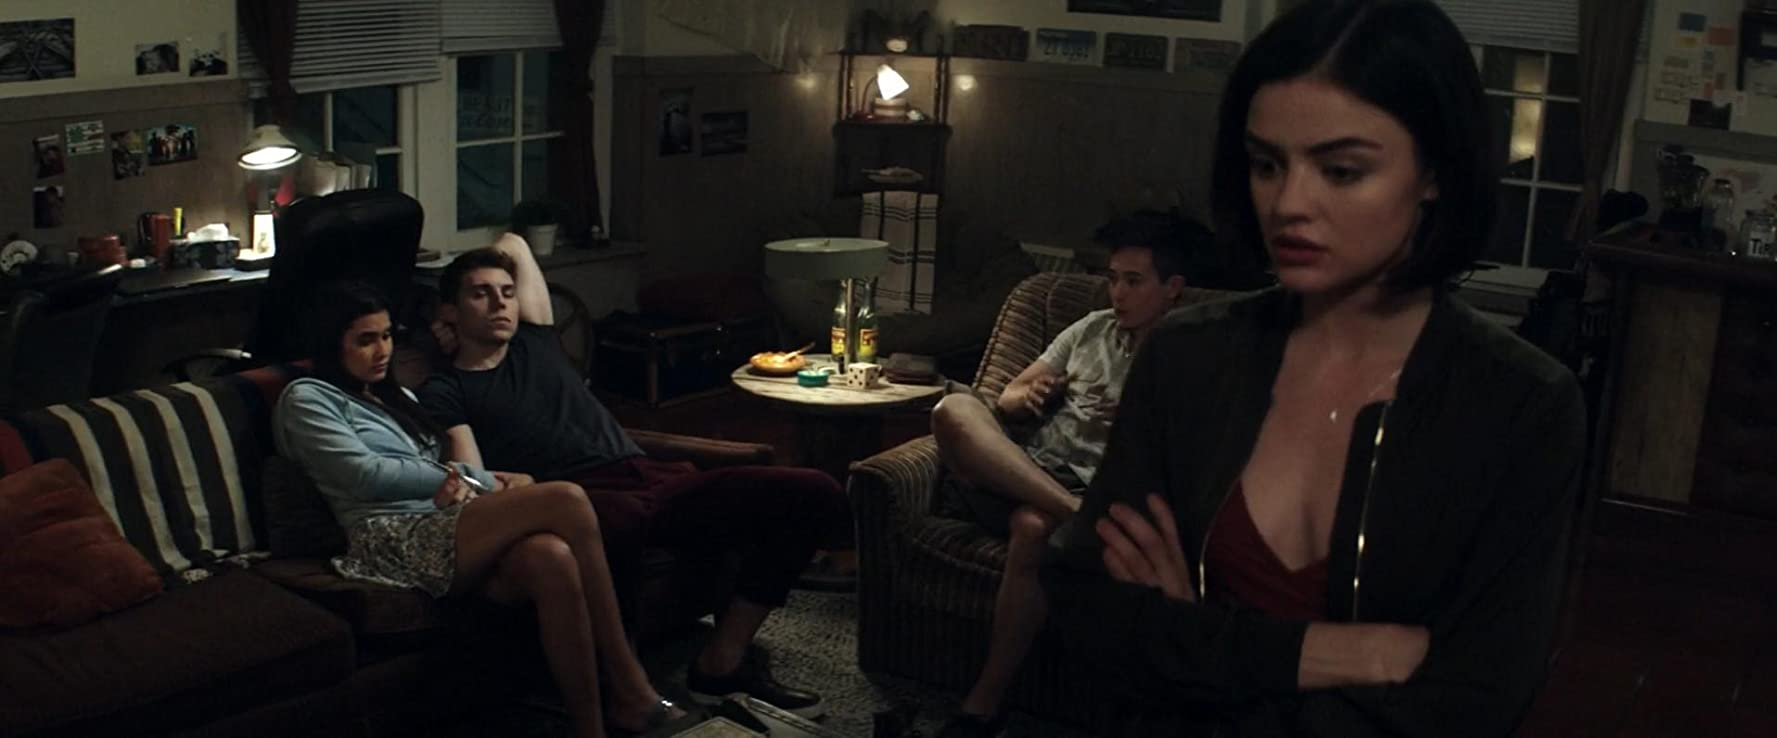 Nolan Gerard Funk, Lucy Hale, Sophia Ali, and Hayden Szeto in Truth or Dare (2018)